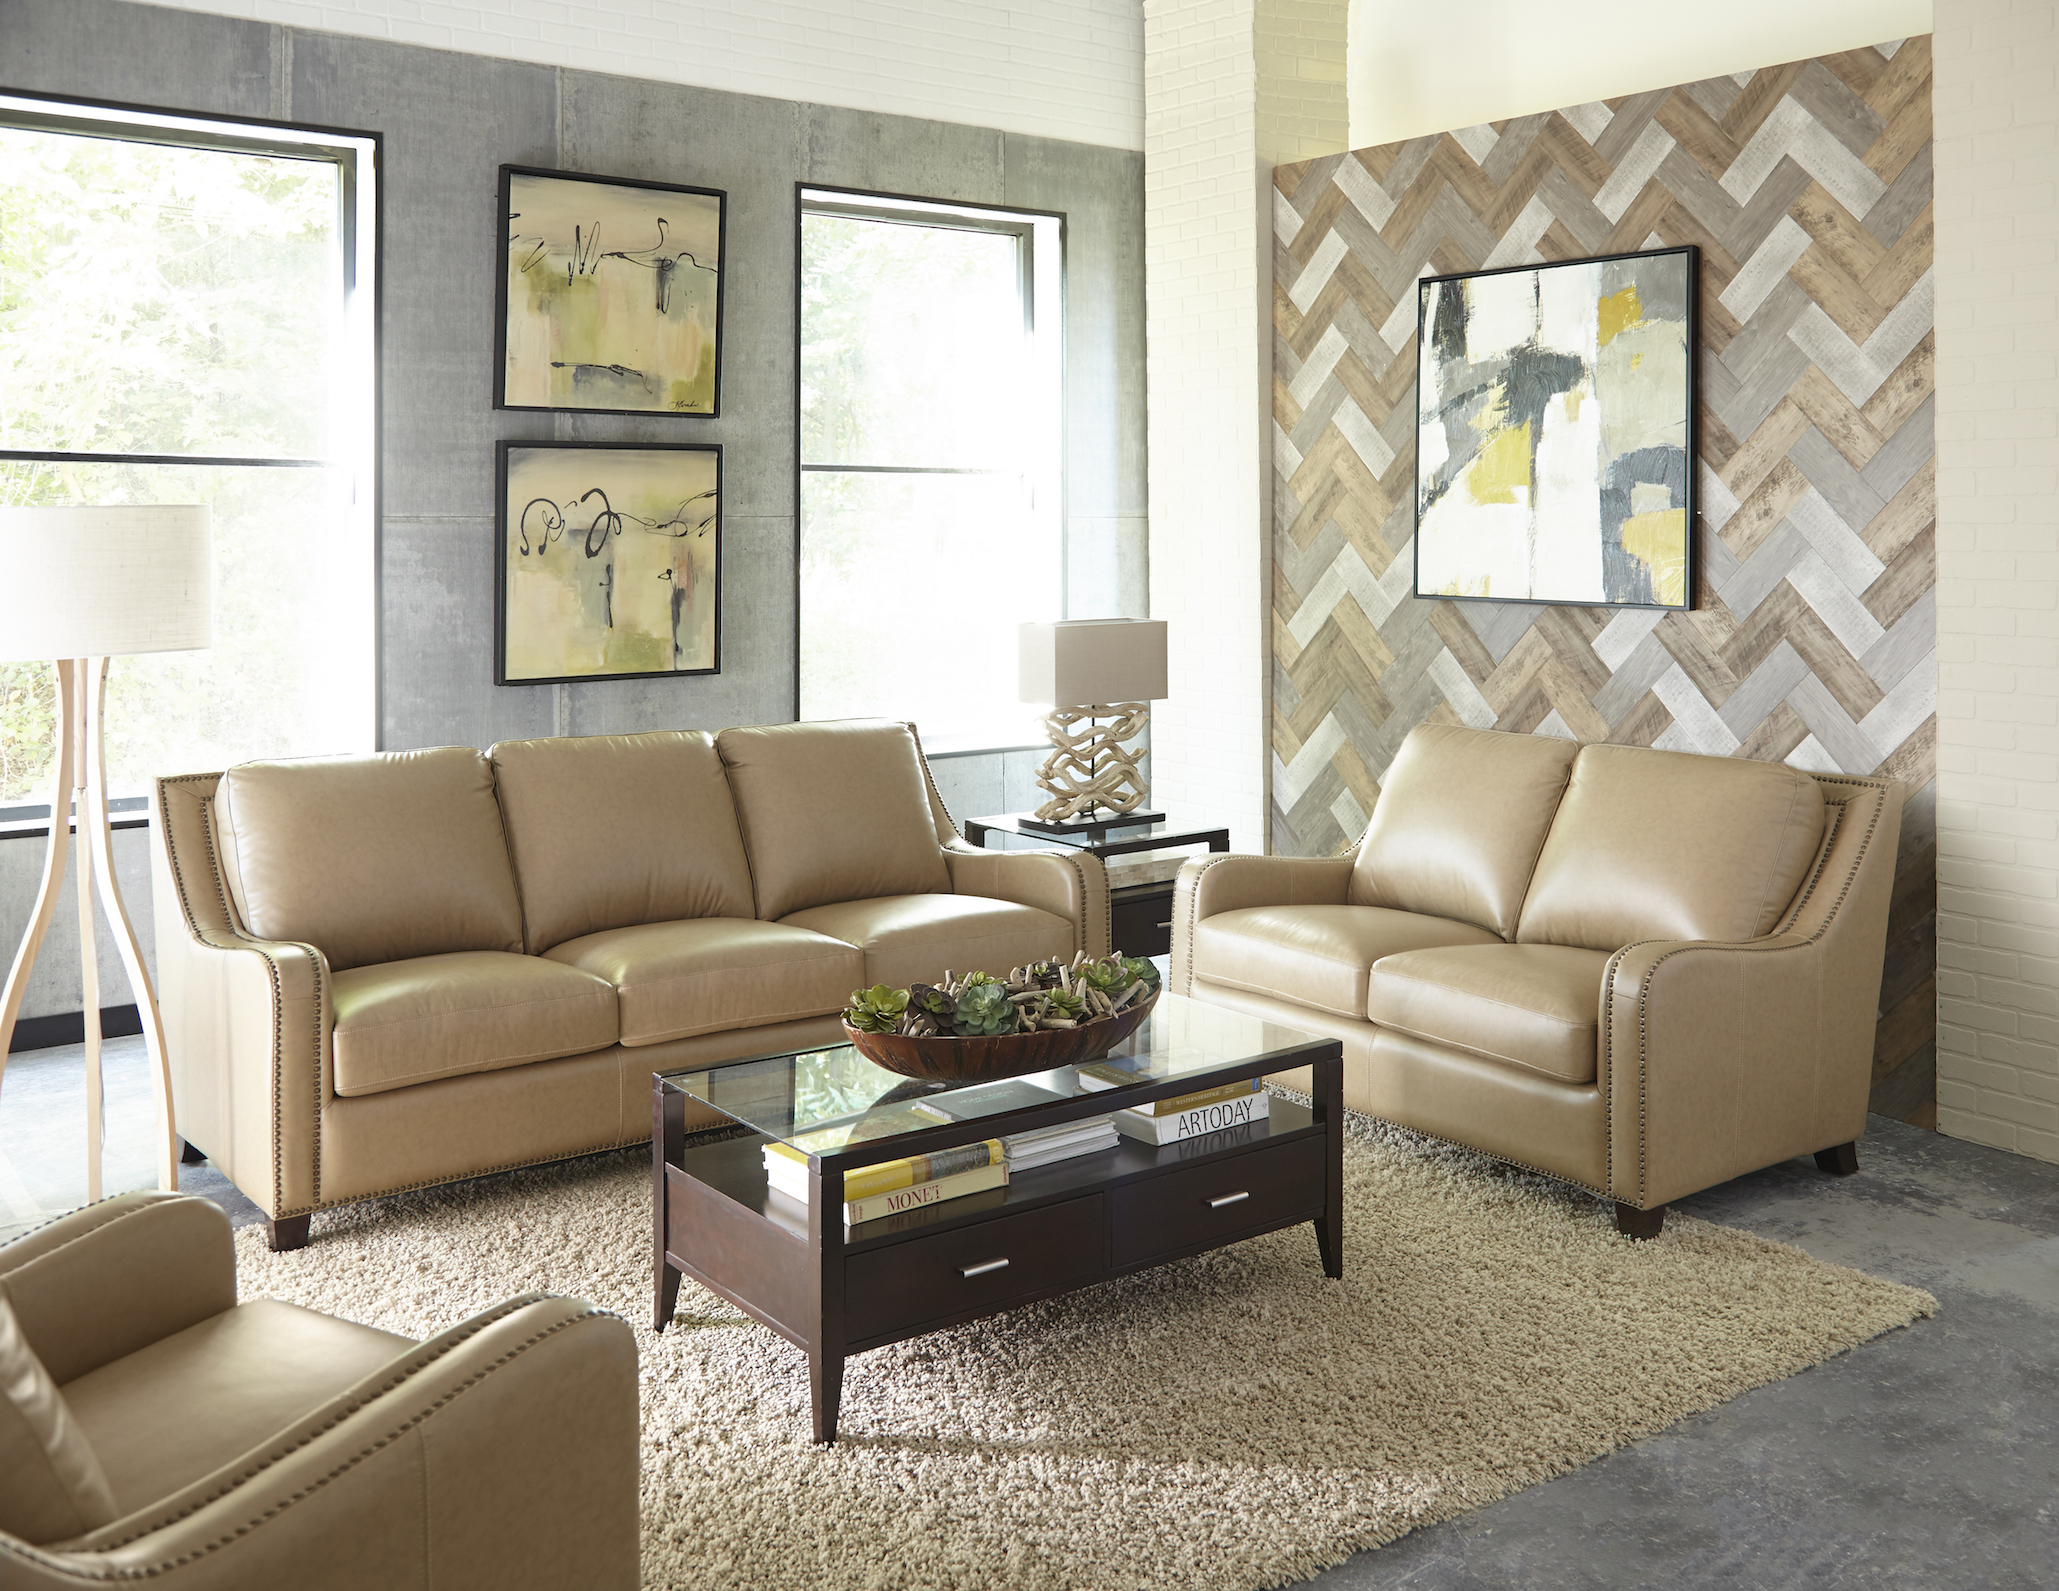 Denver 1636 Leather Sofa in Camel IN STOCK FAST   Sofas and ...